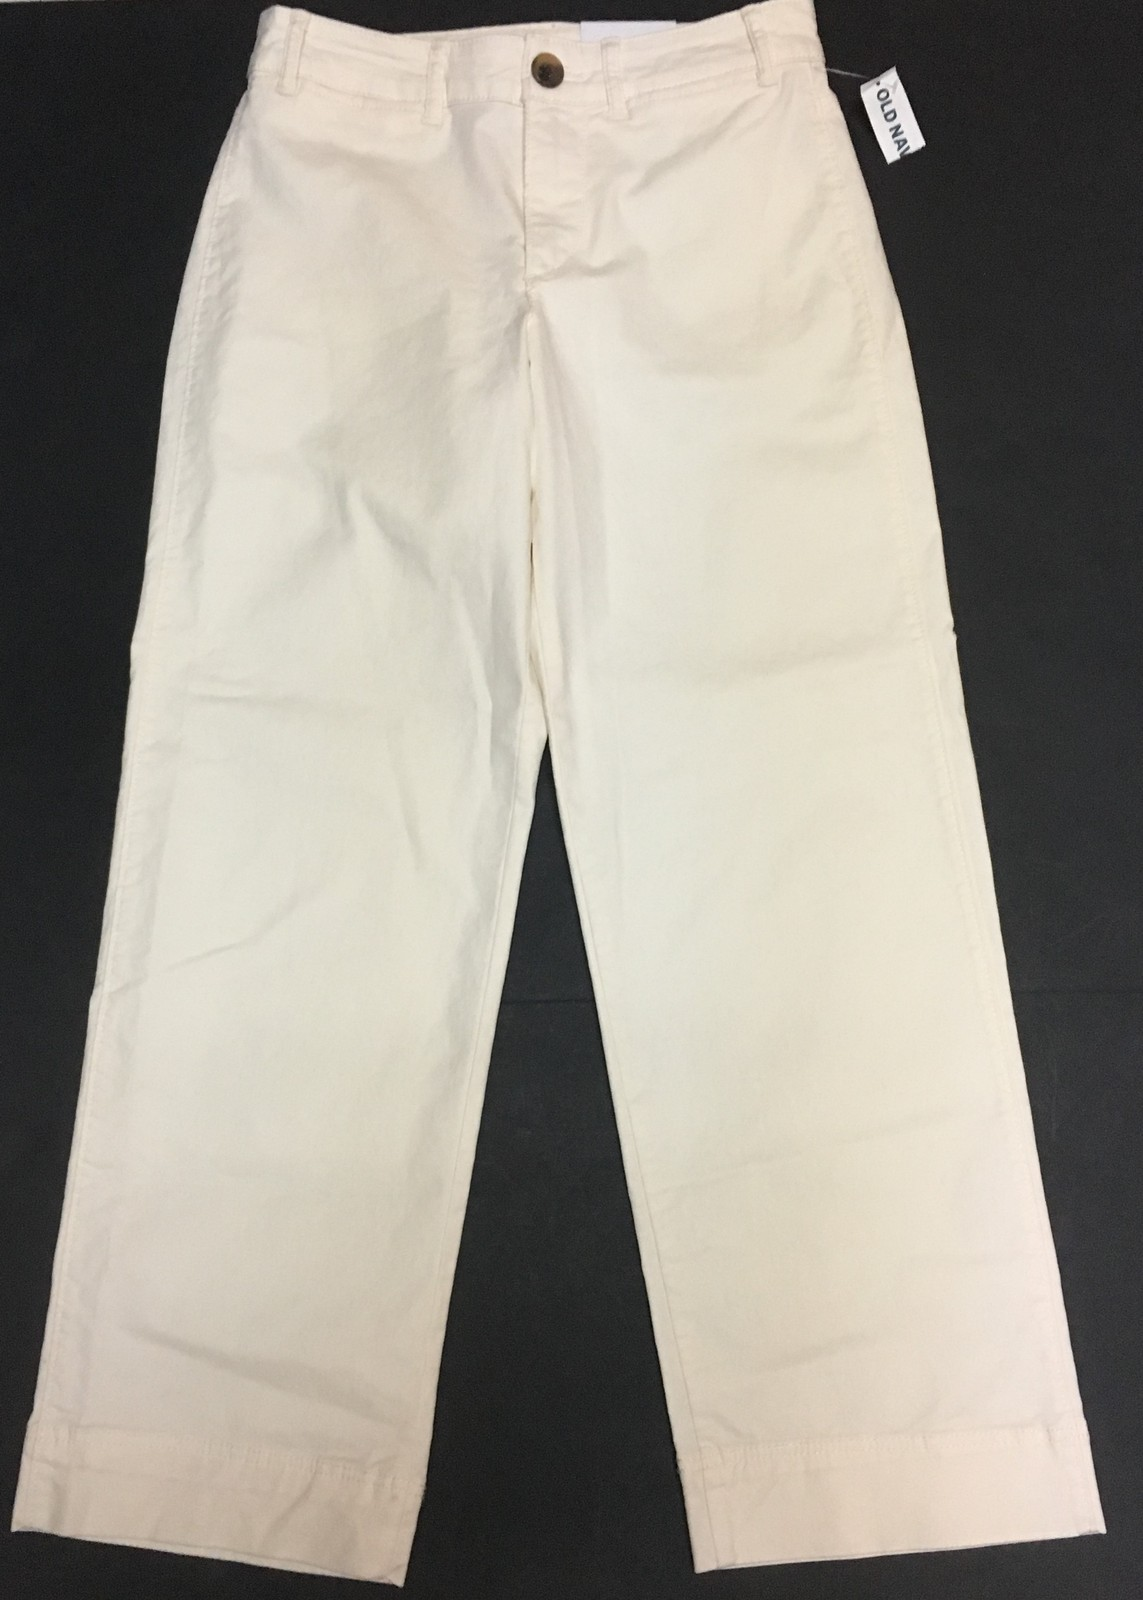 Women's Old Navy White Pants Sz 0 NWT